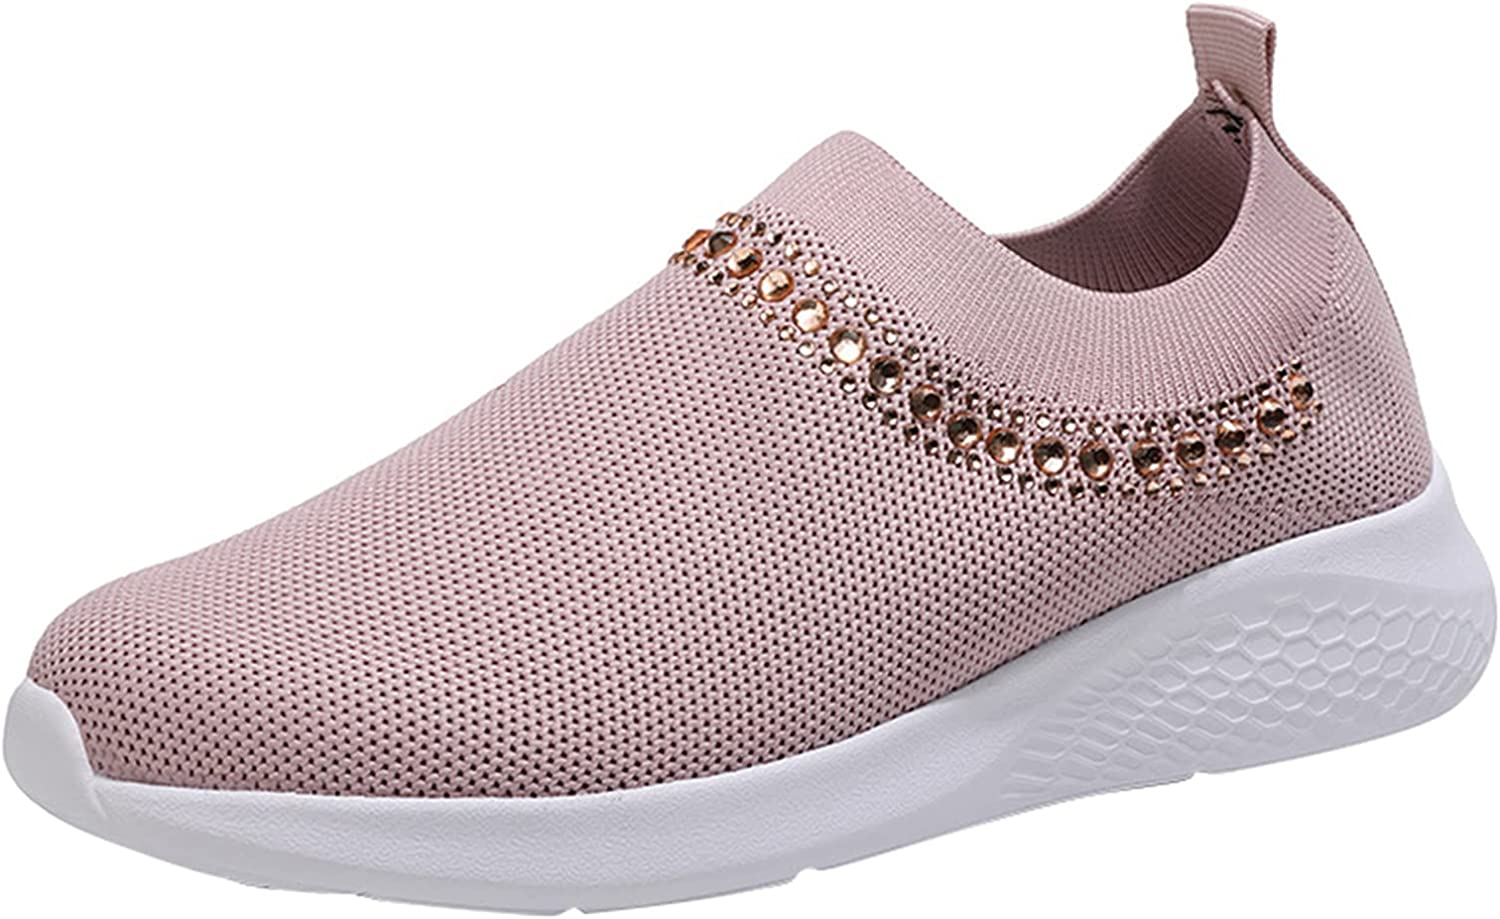 FAMOORE Breathable Mesh Sport Shoes for Women Slip-on Lace Up Sneakers Lightweight Outdoor Workout Shoes